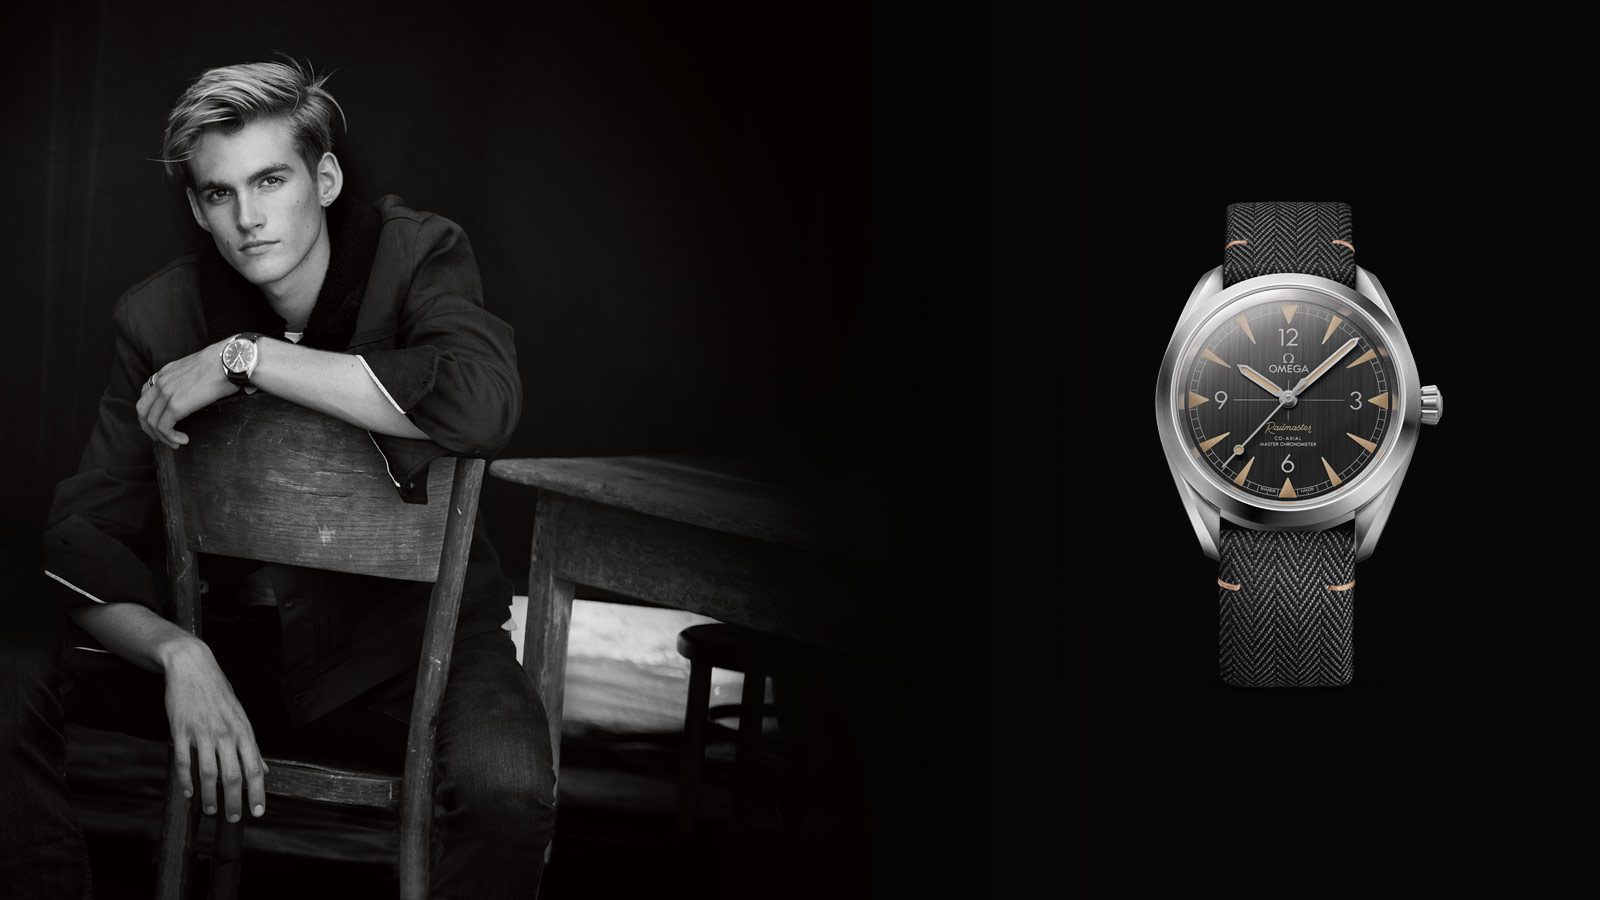 Omega®: Swiss Luxury Watches Since 1848 Caroussel 2 - 48580